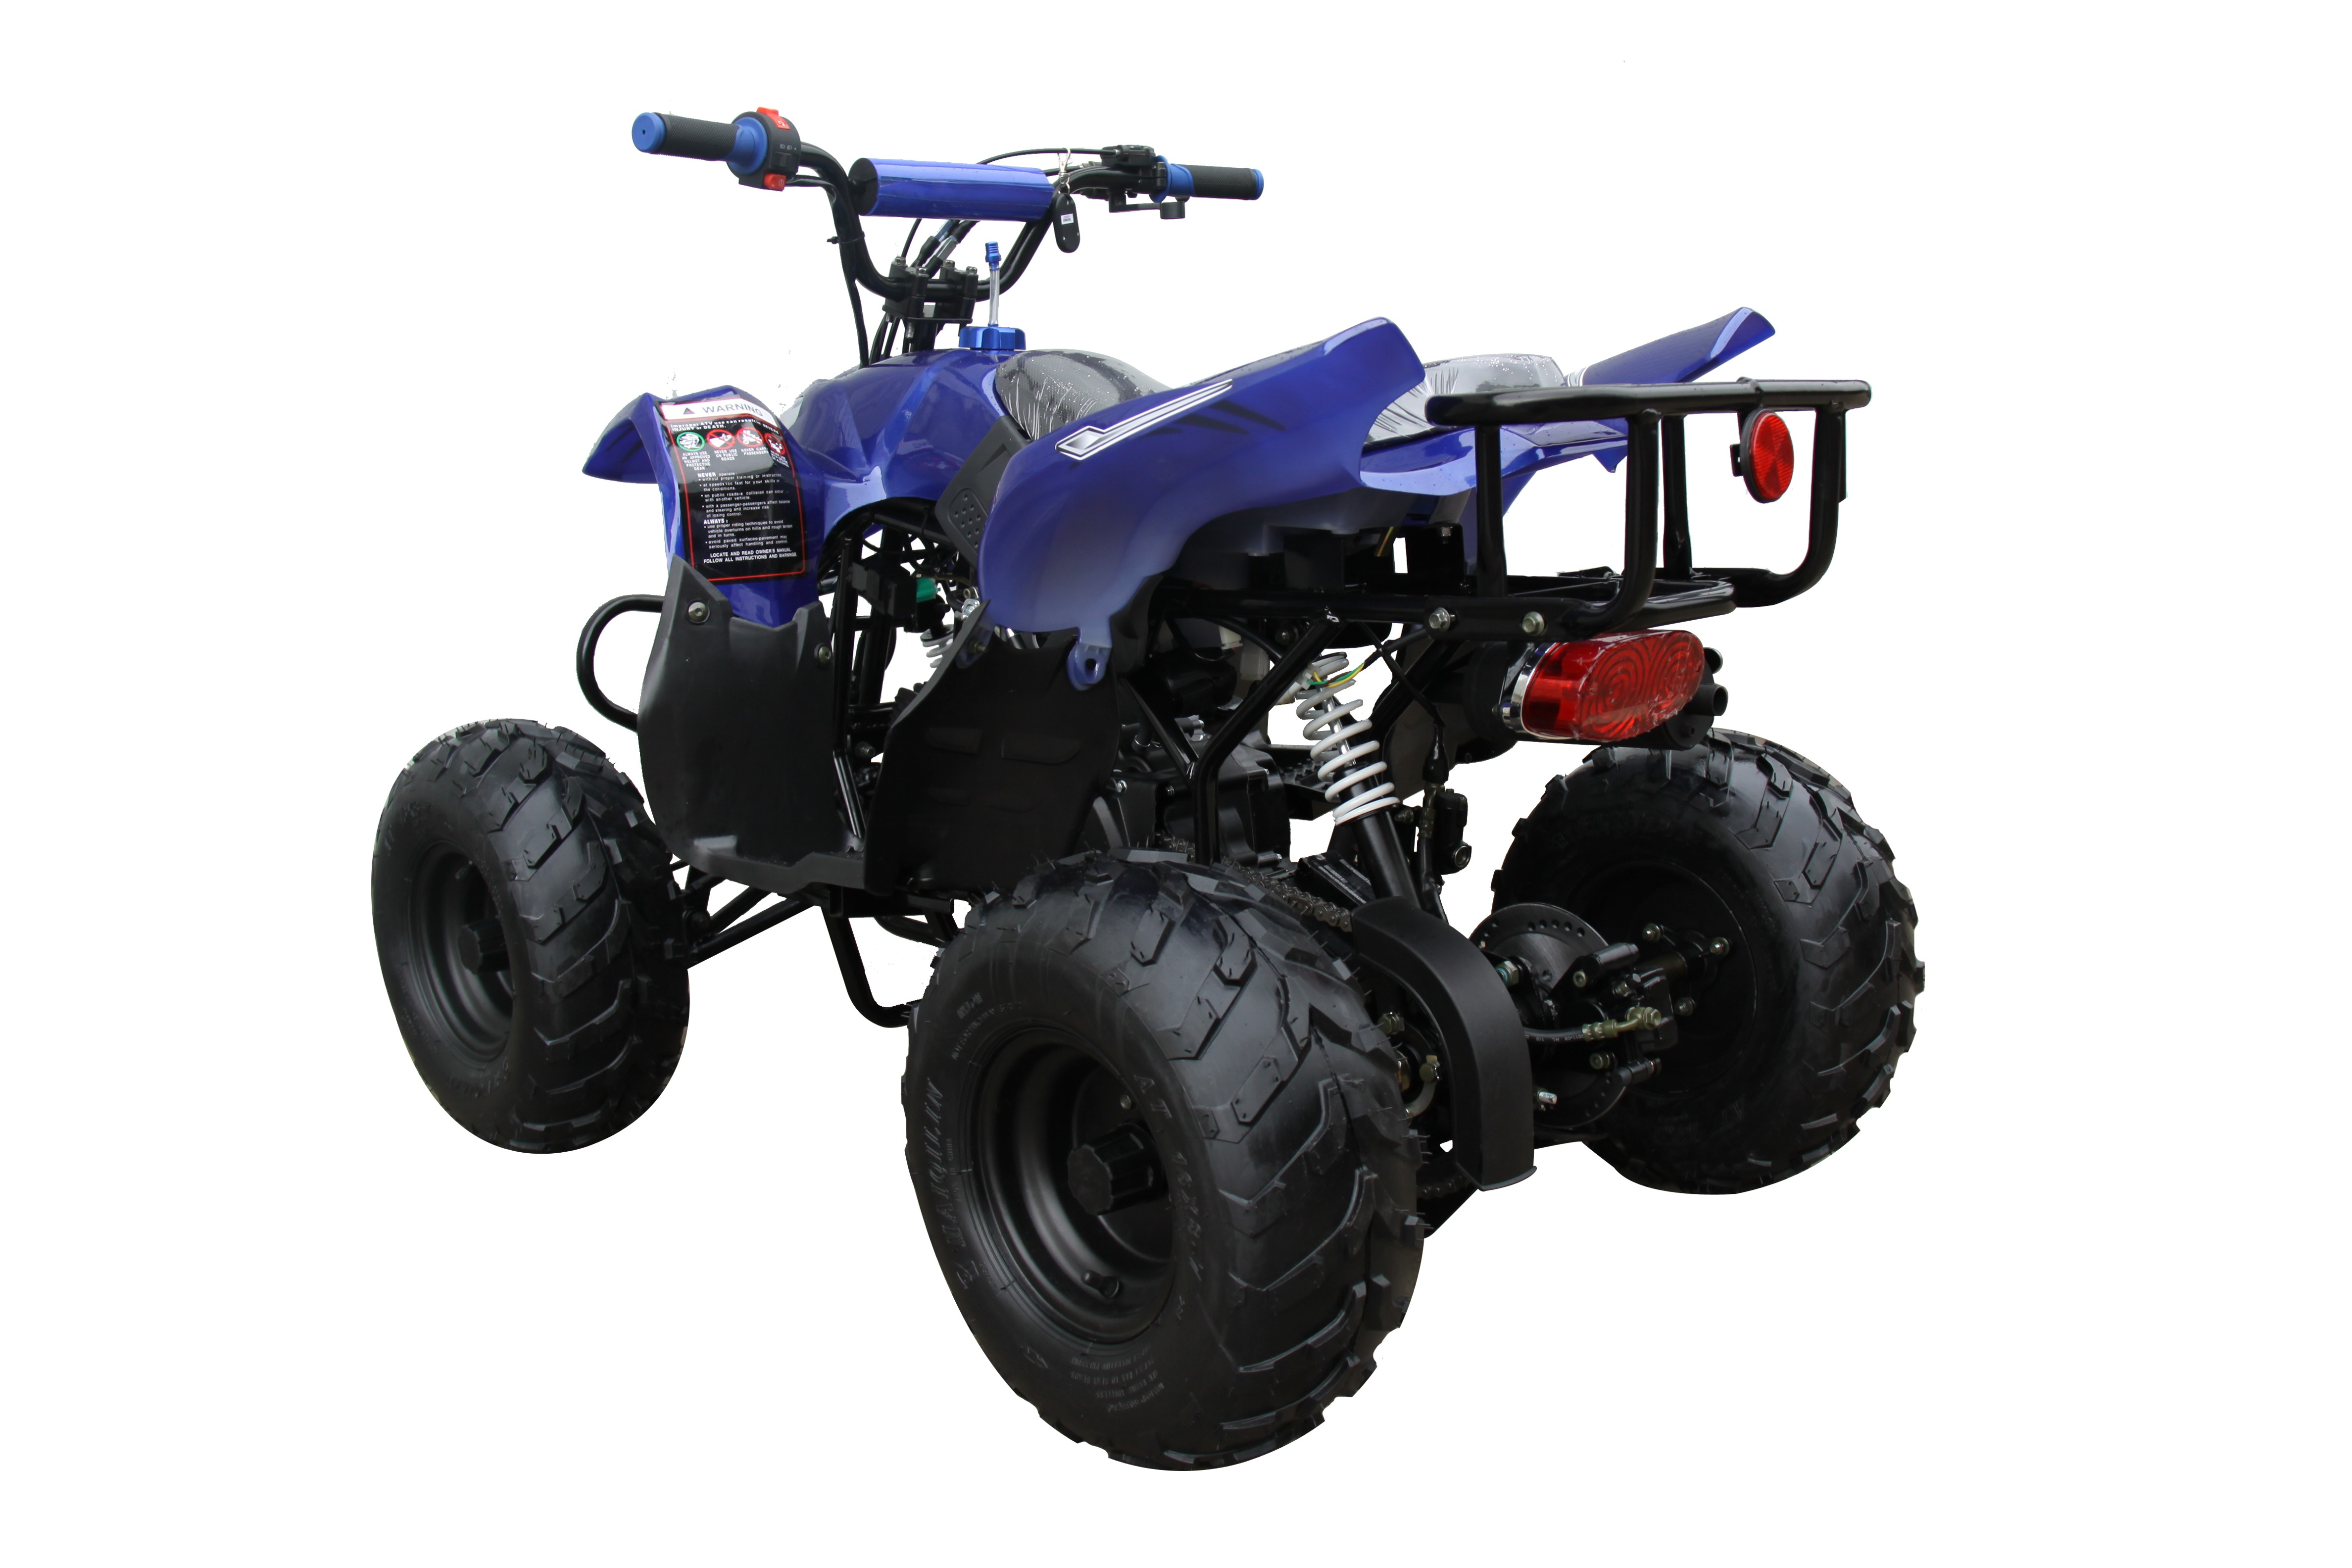 110cc Atv For Sale >> Coolster 110cc 3050B ATV